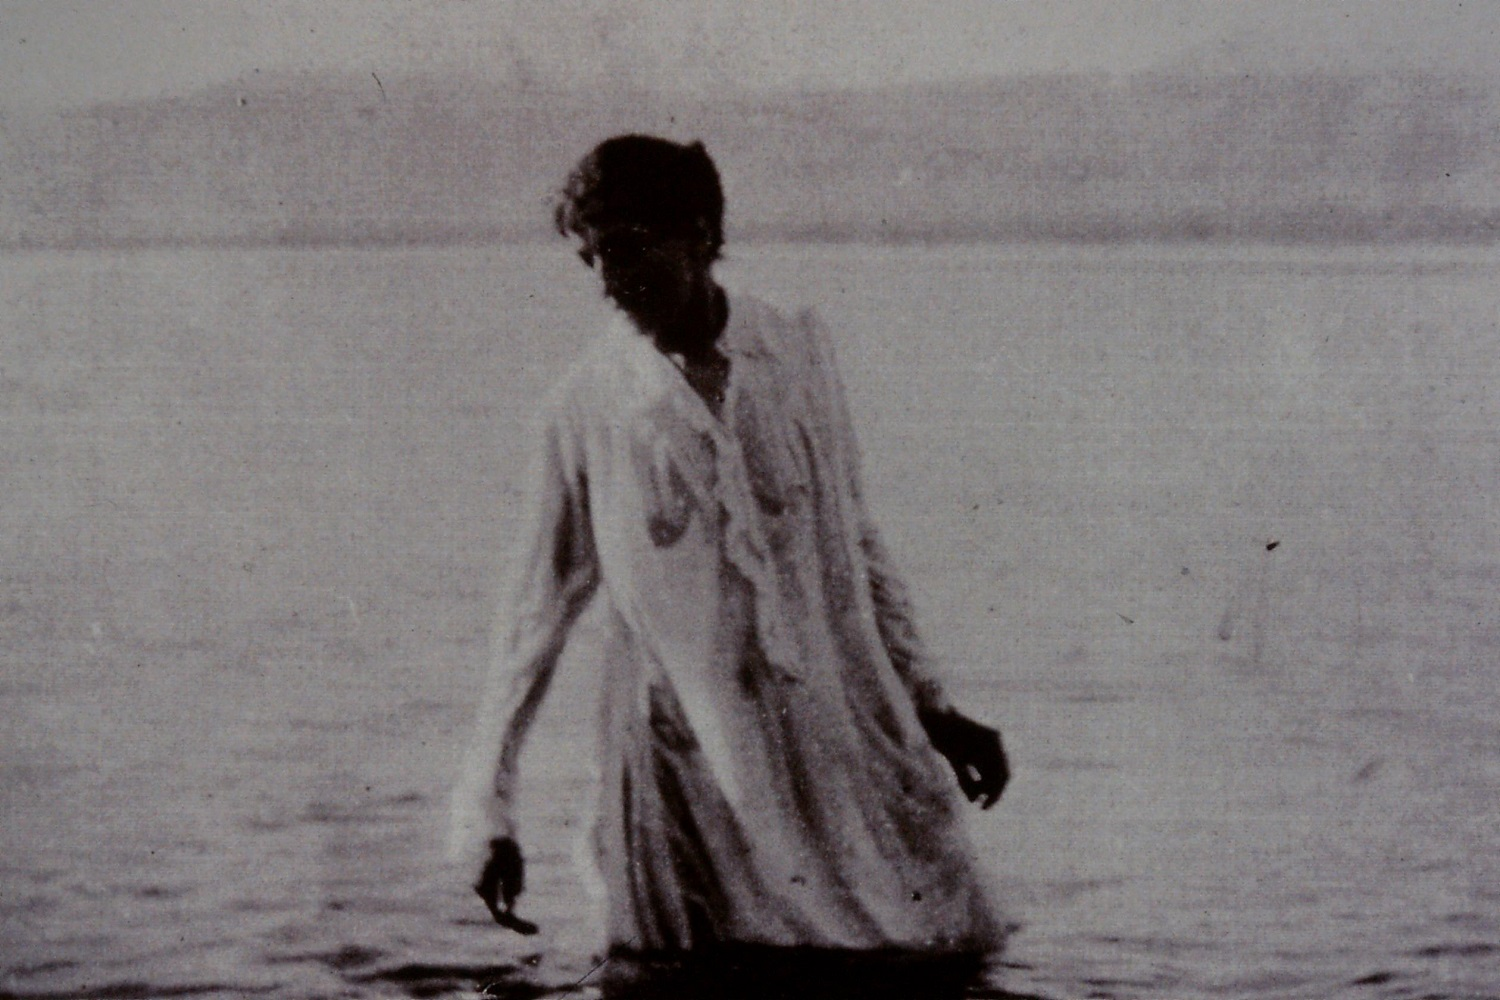 Gertrude Bell, Photographer: from Jerusalem to the Dead Sea - 'The lack of interest in these photographs is an omission from the telling of the Bell story, I think, because these images and the friends who helped in their creation are part of Bell's beginning.'